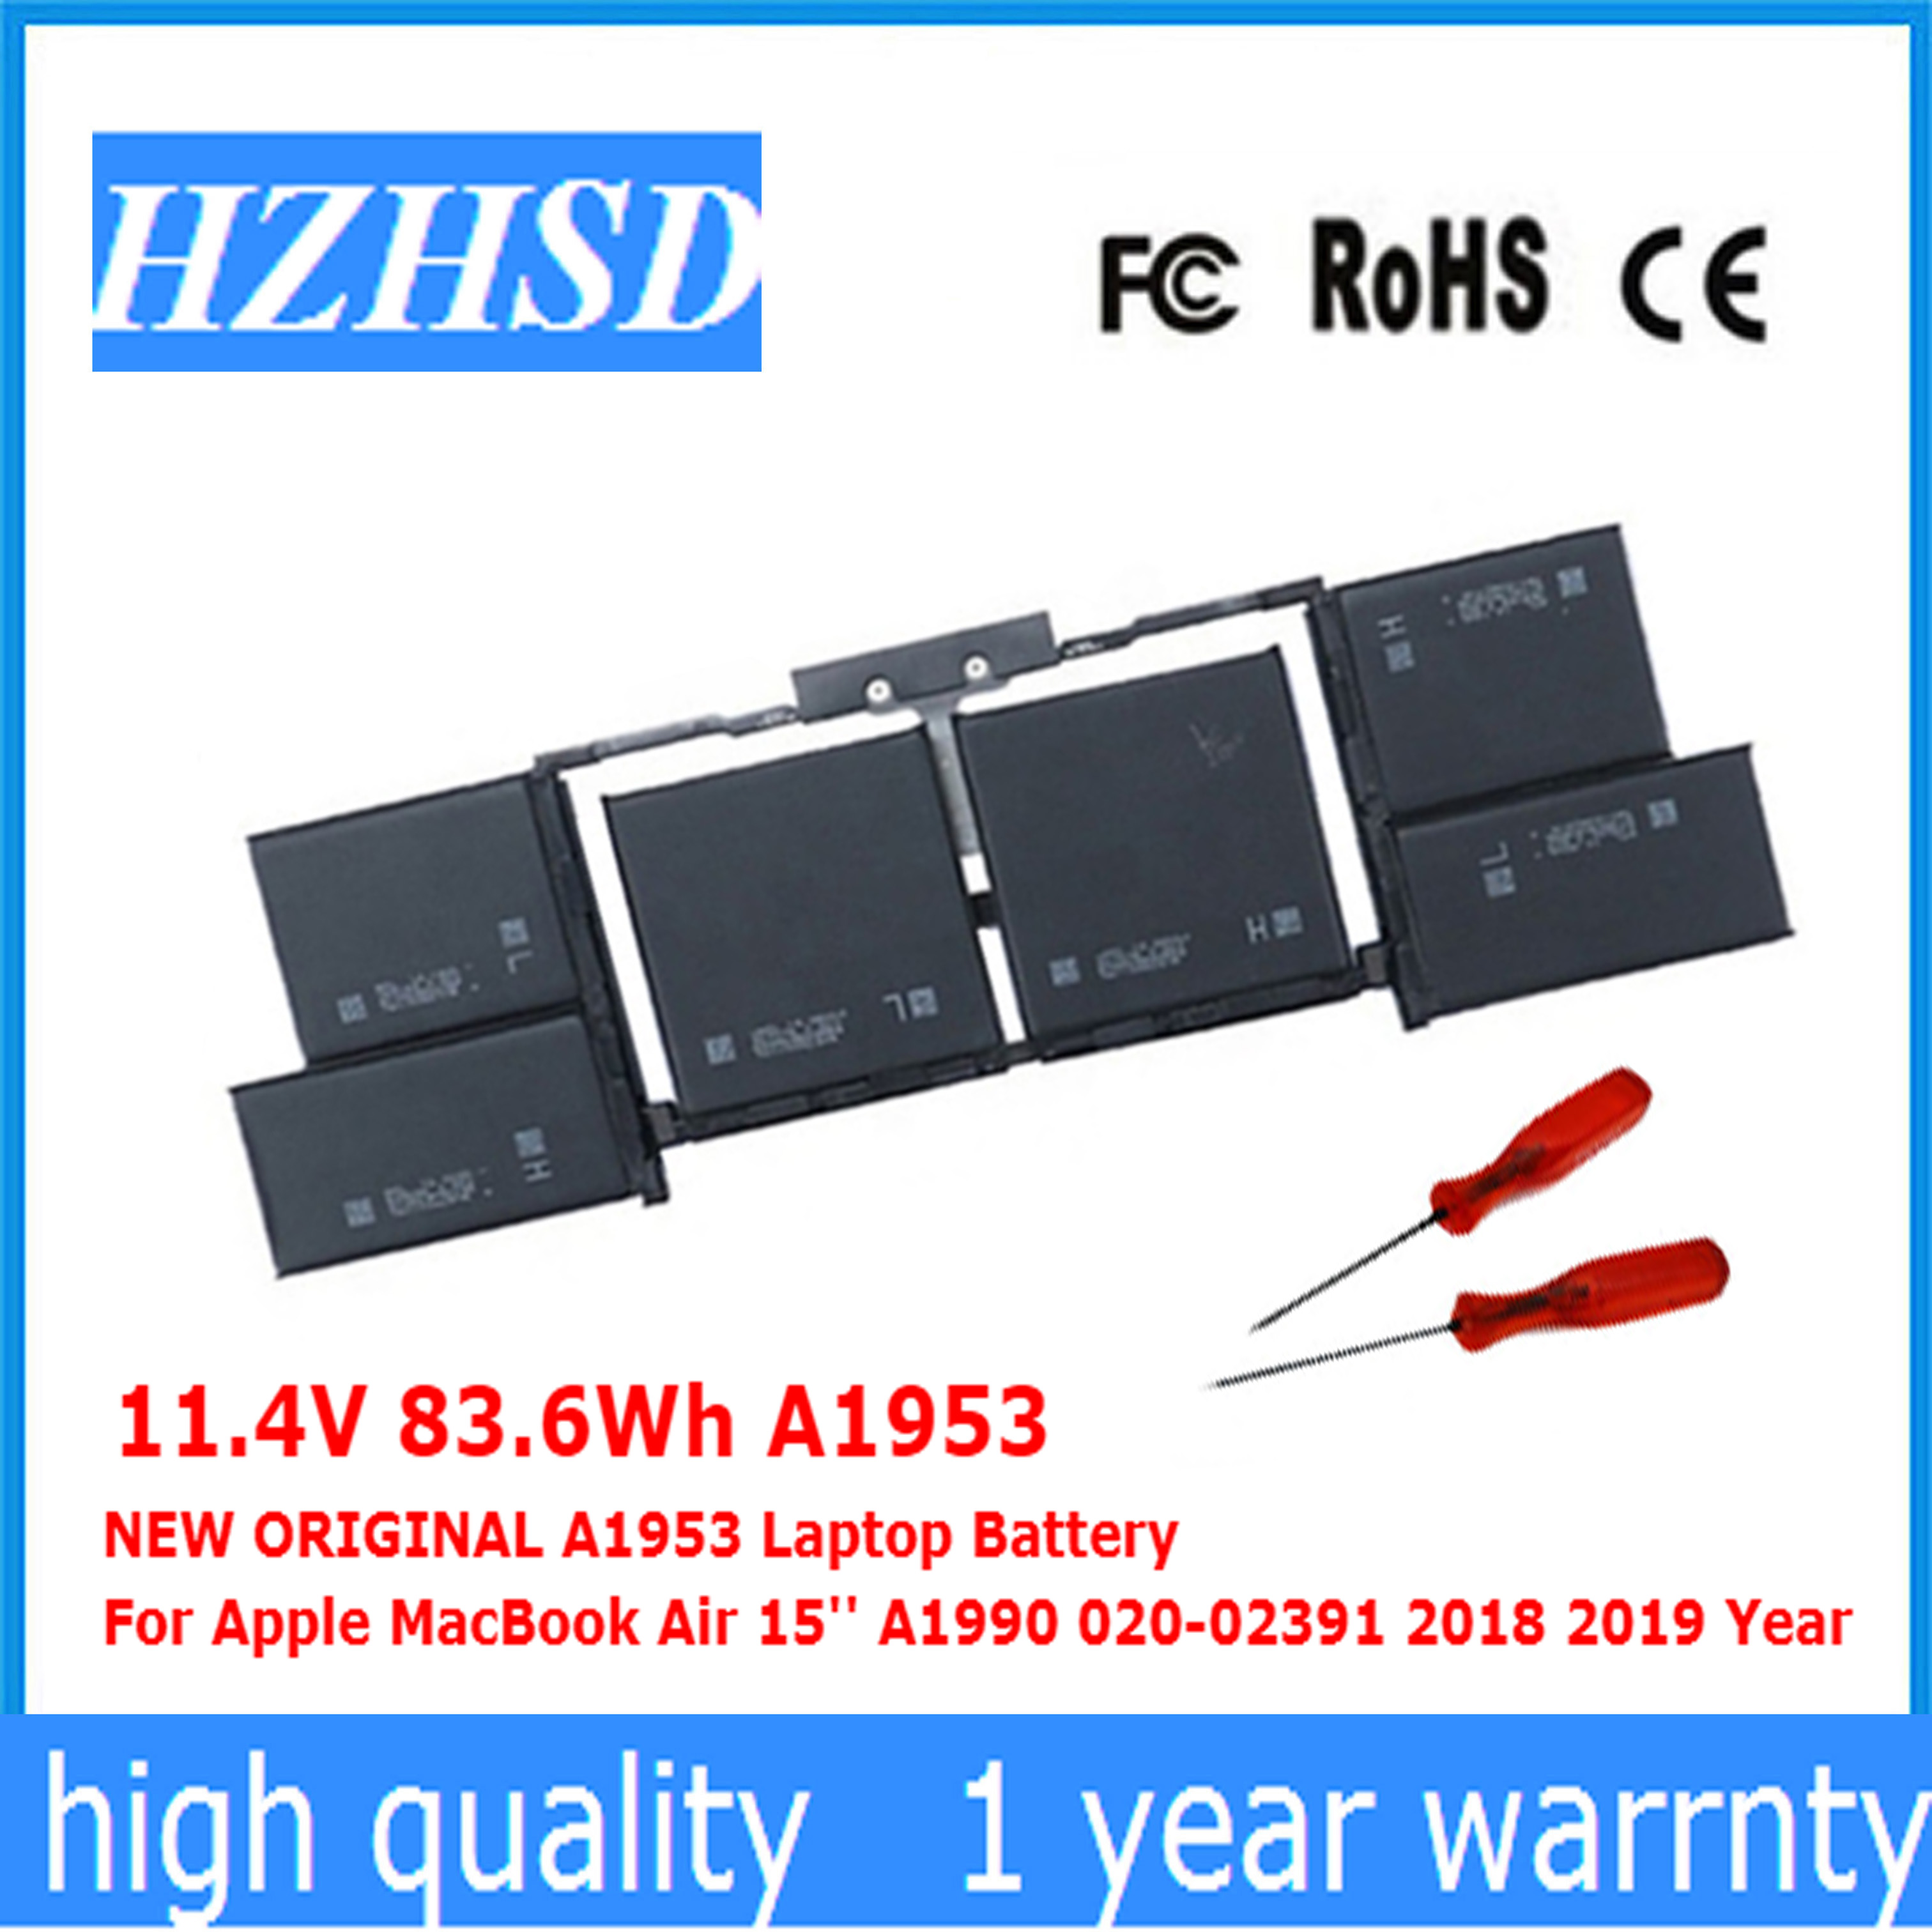 11.4V 83.6Wh A1953 NEW ORIGINAL A1953 Laptop Battery For Apple MacBook Air 15'' A1990 020-02391 2018 2019 Year